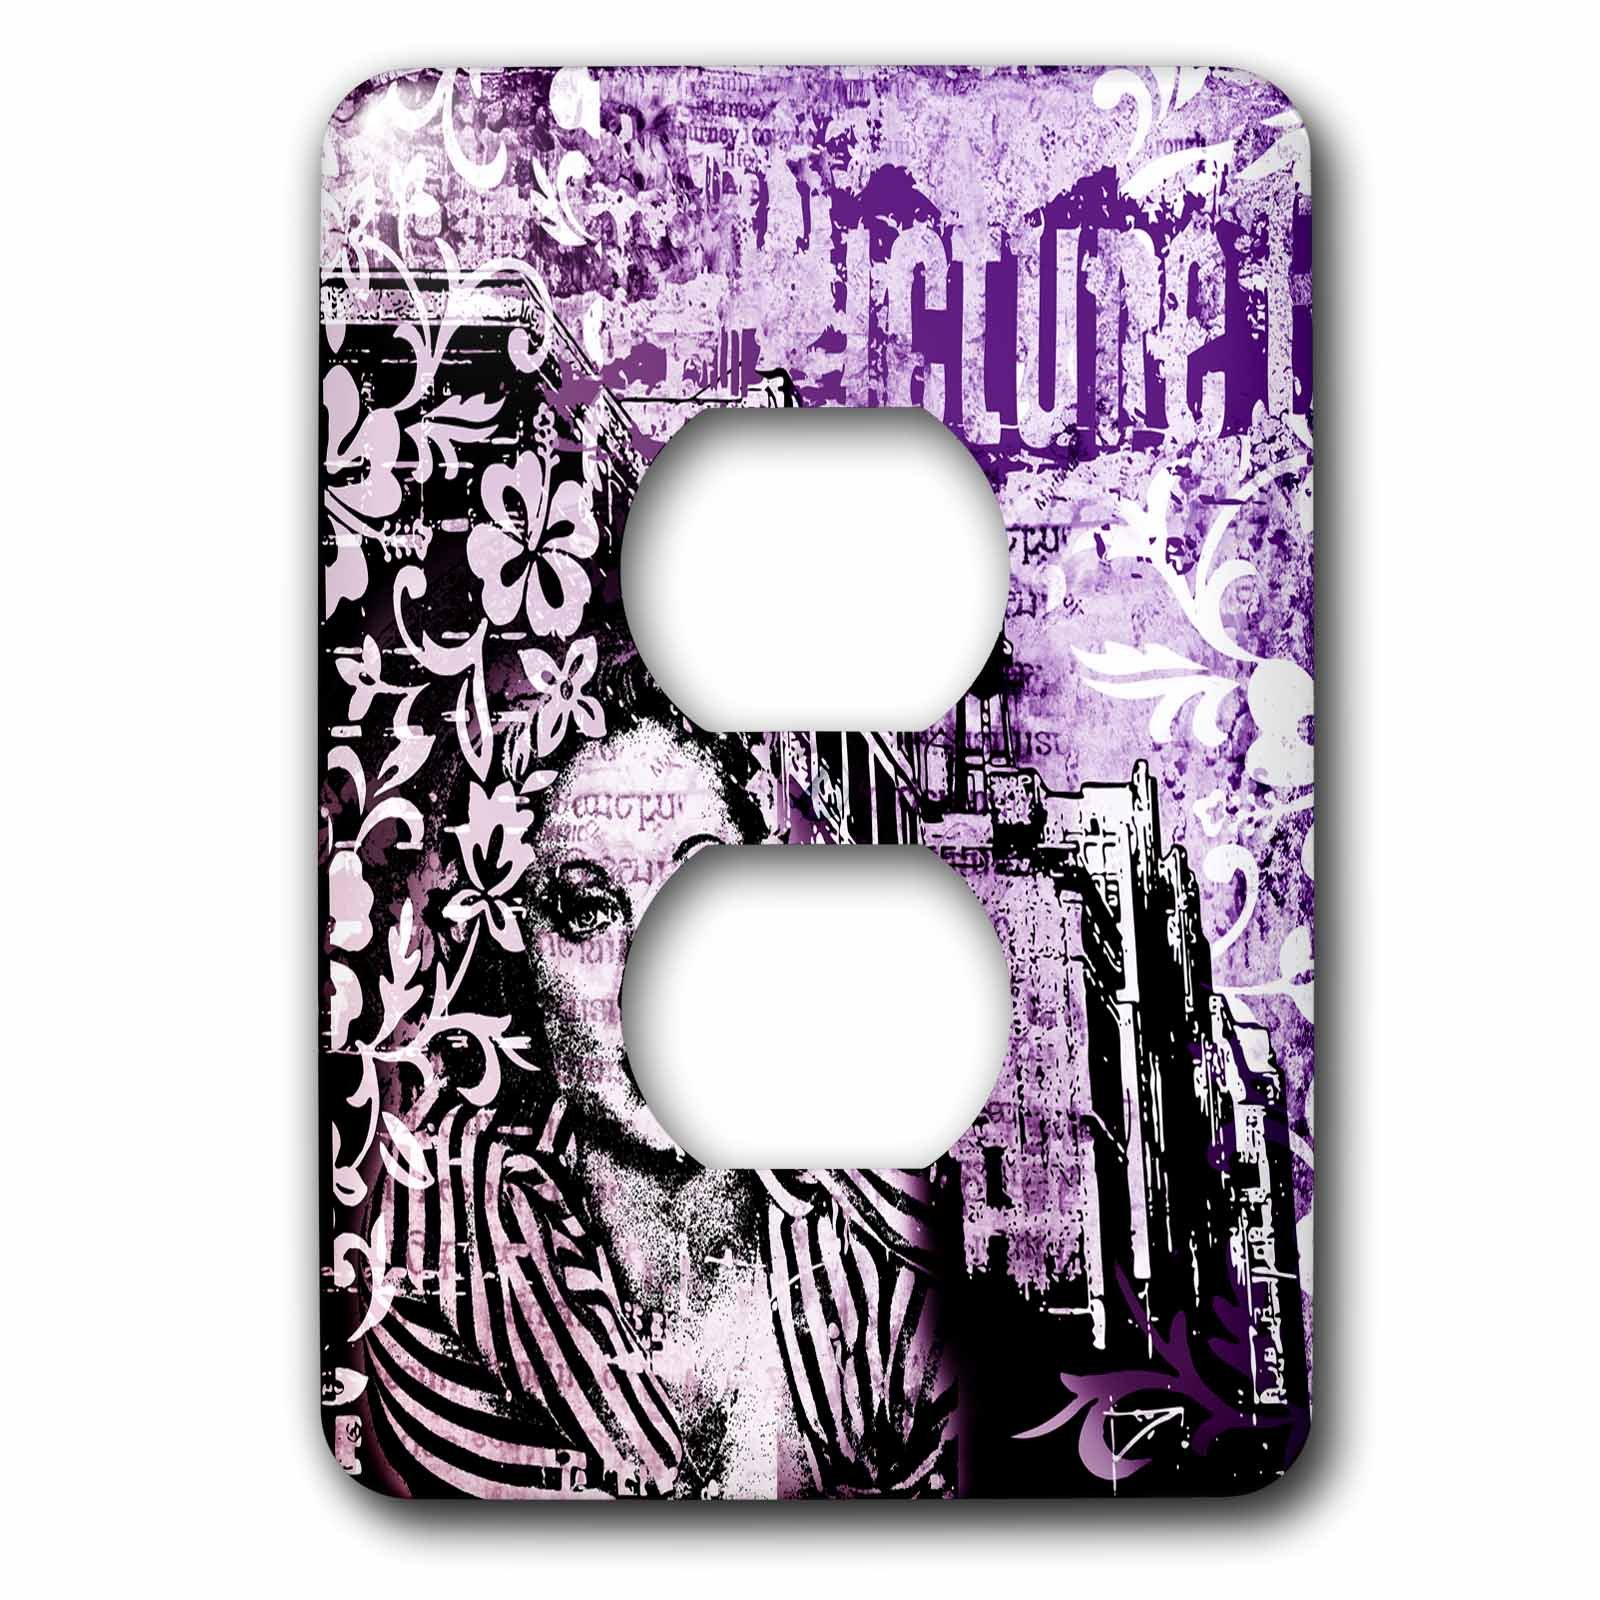 3dRose Andrea Haase Art Illustration - Retro Woman Illustration Urban Style In Black White And Purple - Light Switch Covers - 2 plug outlet cover (lsp_271213_6)